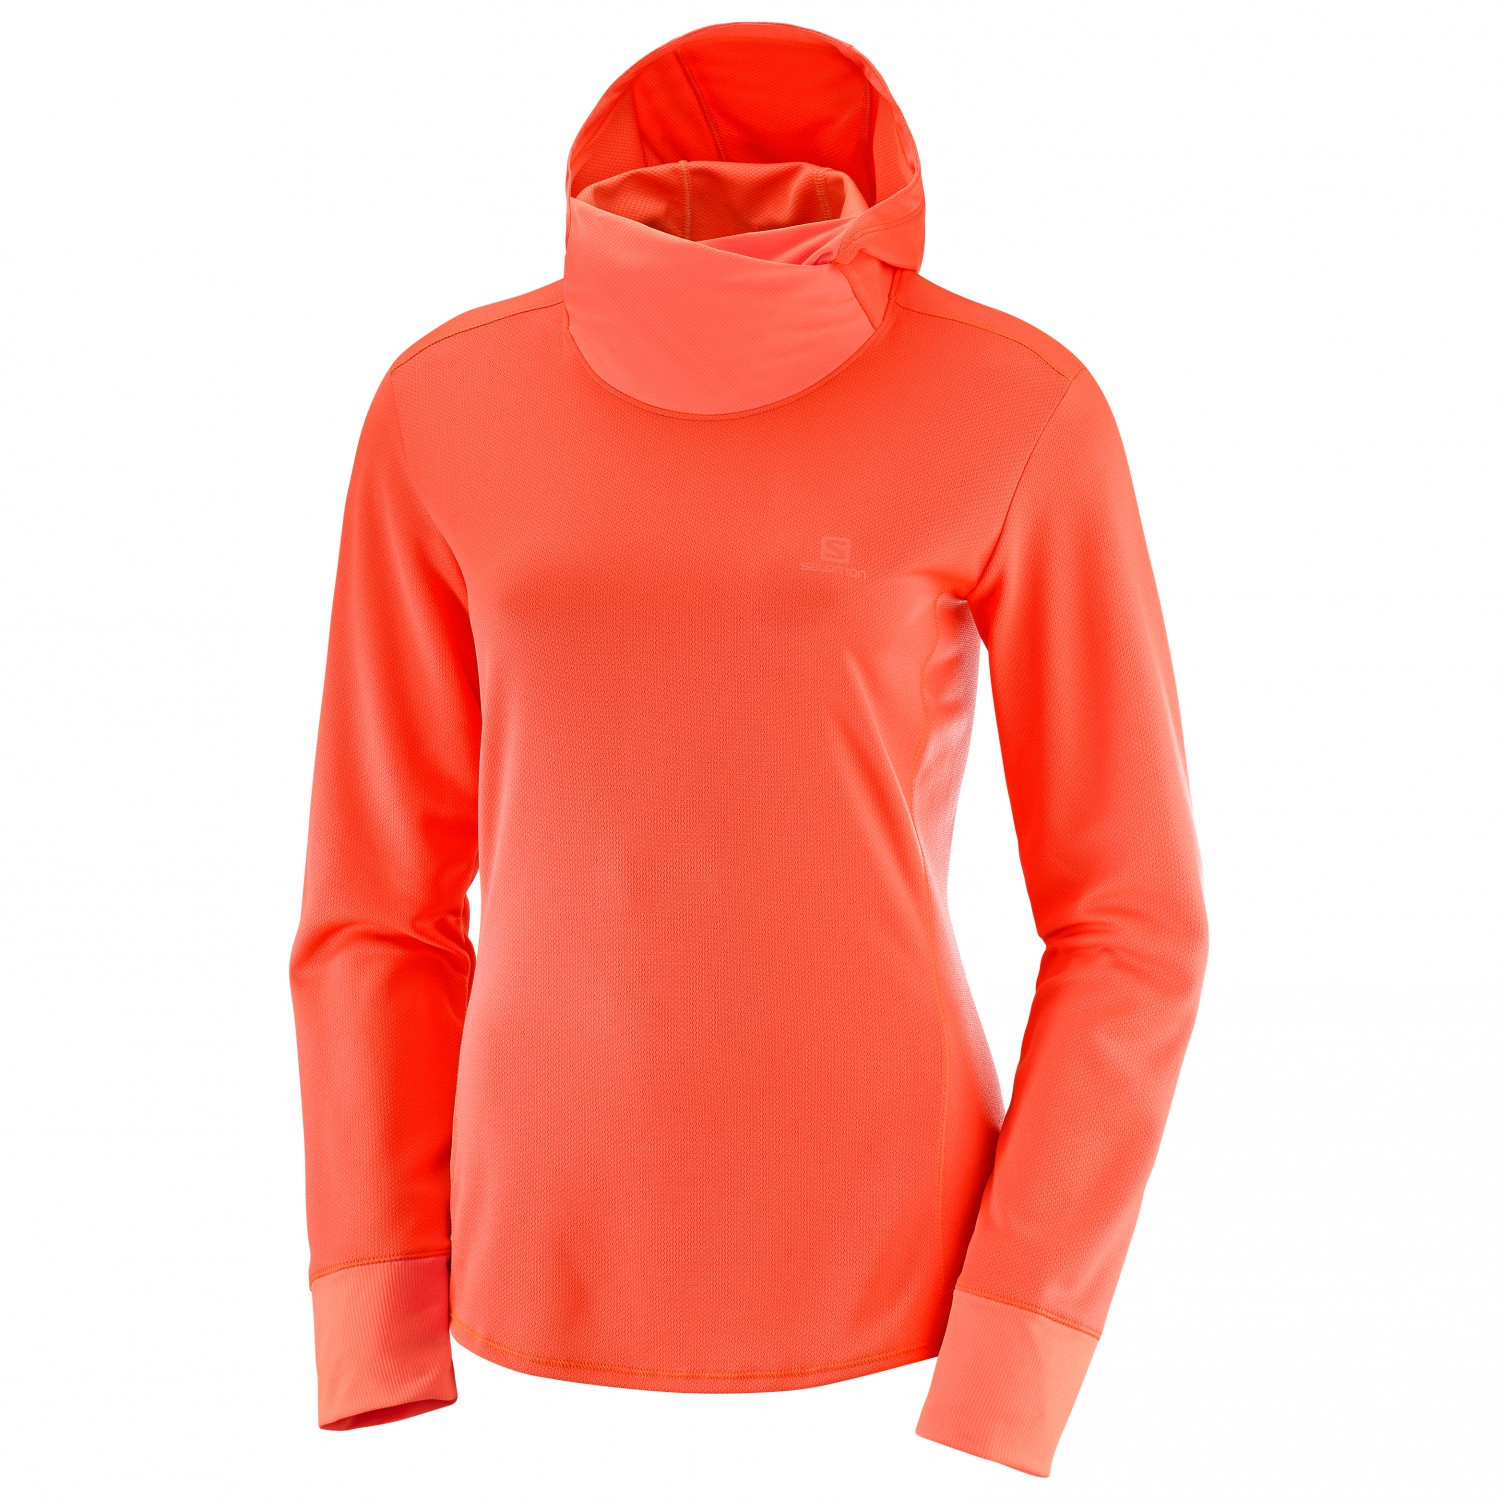 Ls Salomon Sweat Coral Fiery Agile Capuche Women's À HeatherXs Hoodie xrCBedoW